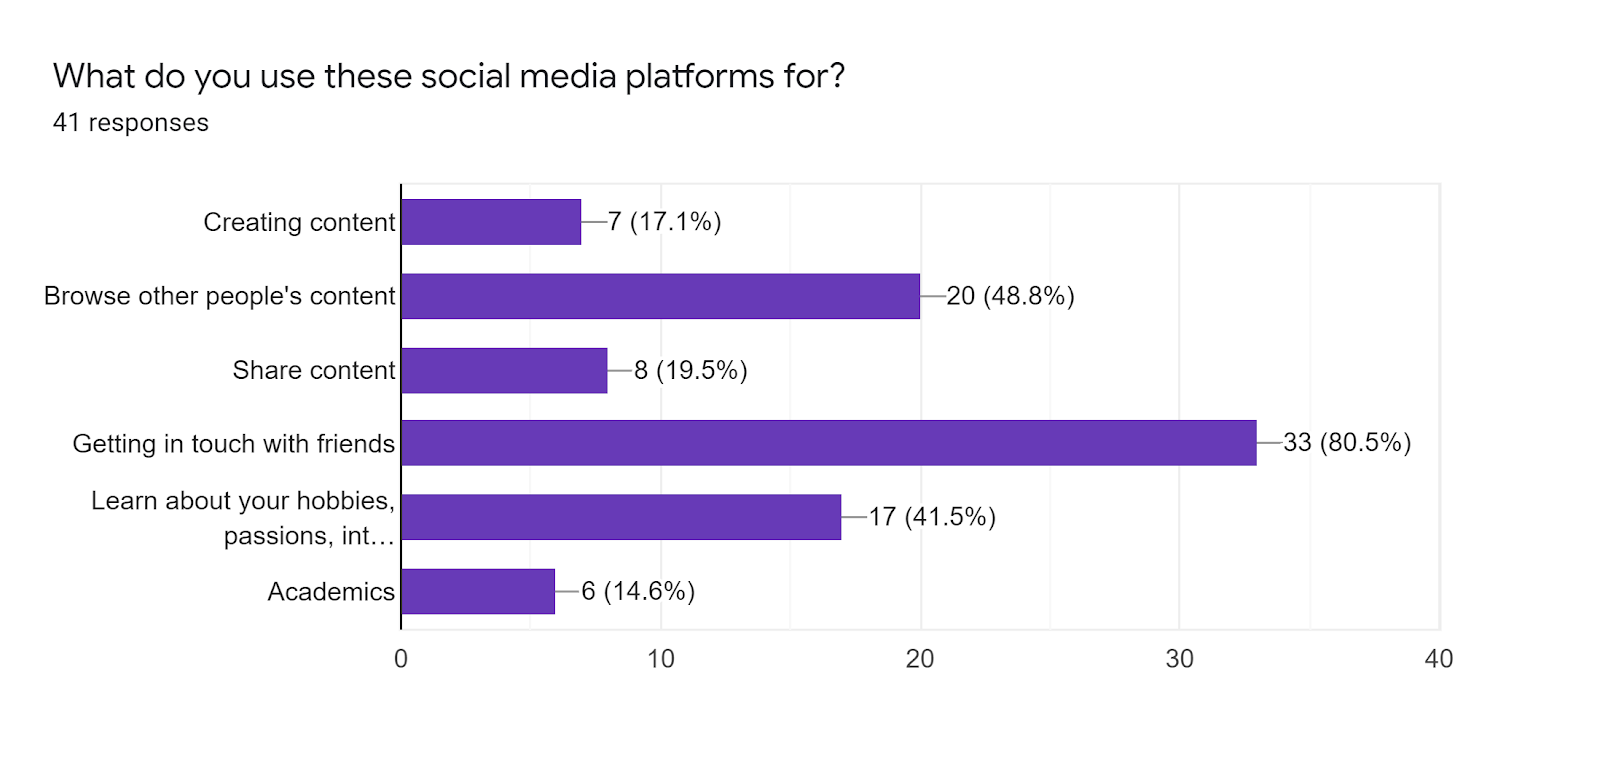 Forms response chart. Question title: What do you use these social media platforms for?. Number of responses: 41 responses.